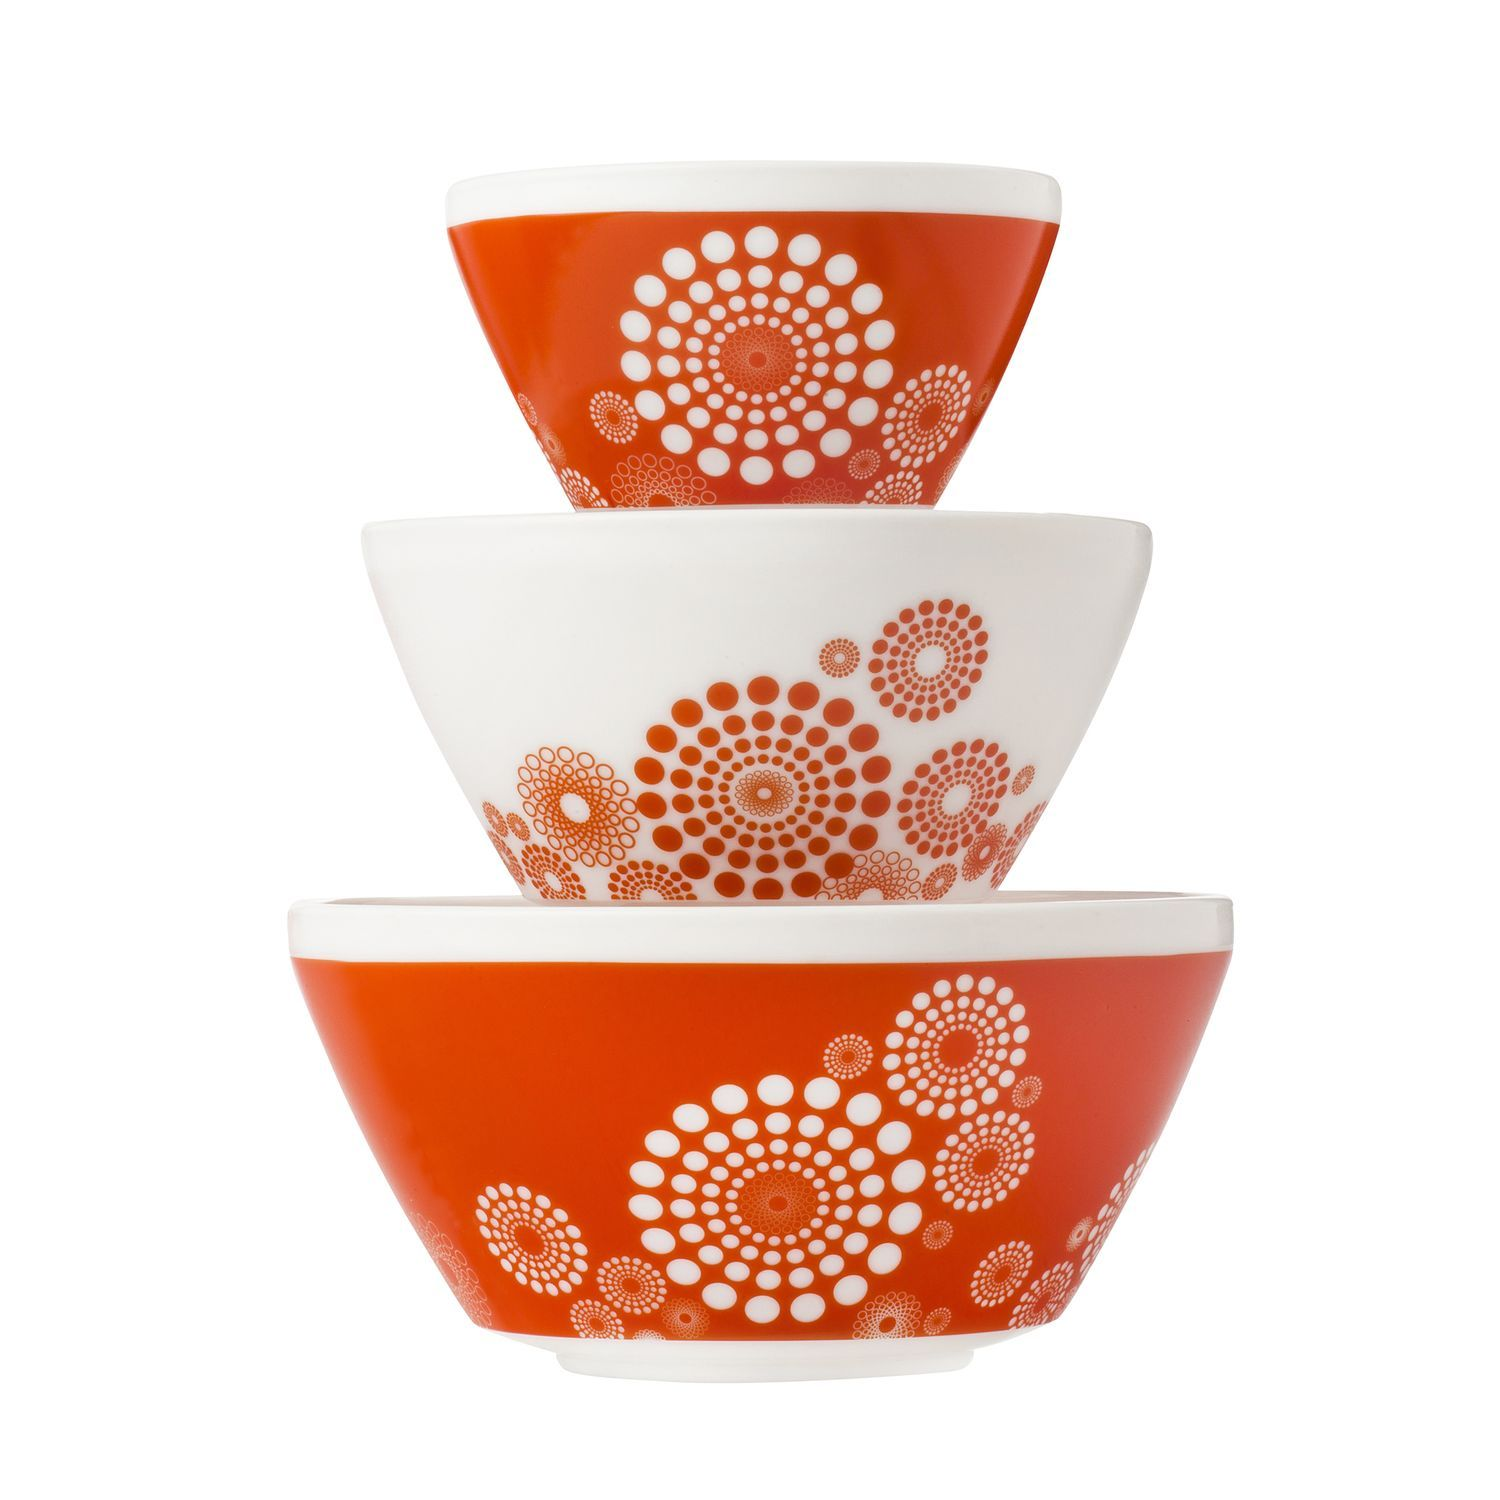 Vintage Charm™ Tickled Pink 3-pc Mixing Bowl Set, inspired by ...